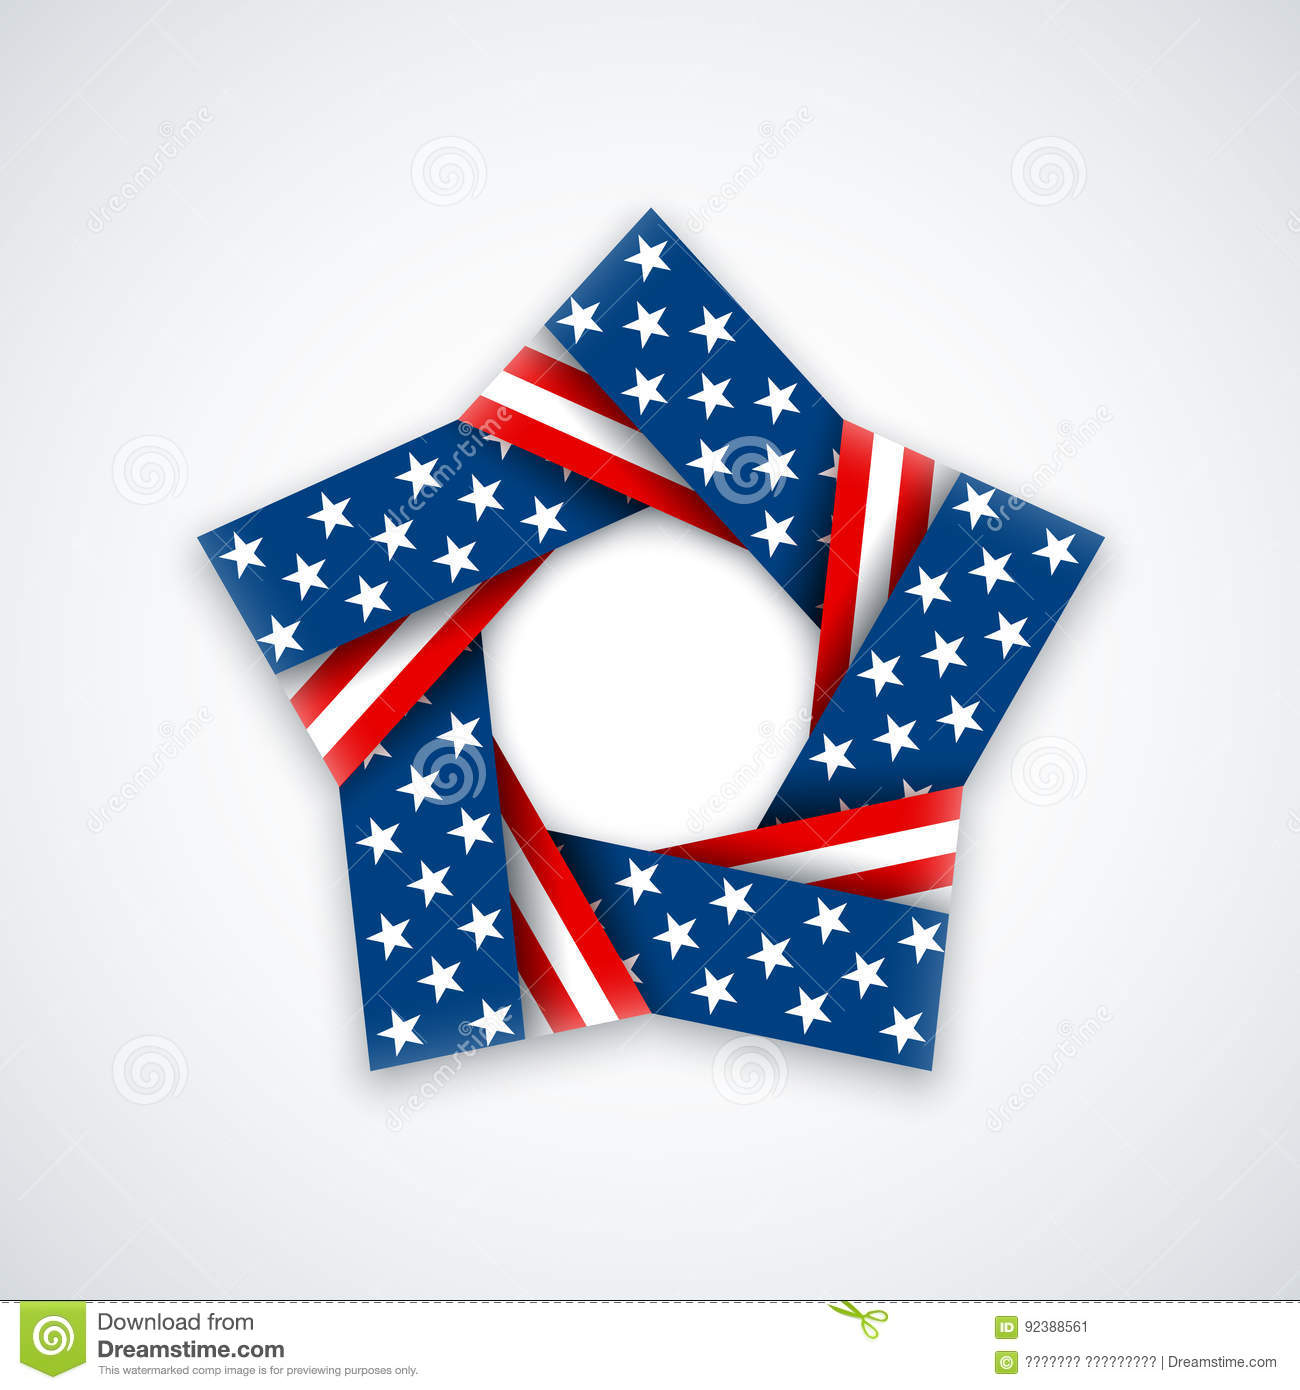 fe40dea9986 Star made of double ribbon with american flag colors and symbols. Vector  illustration for USA national holidays.